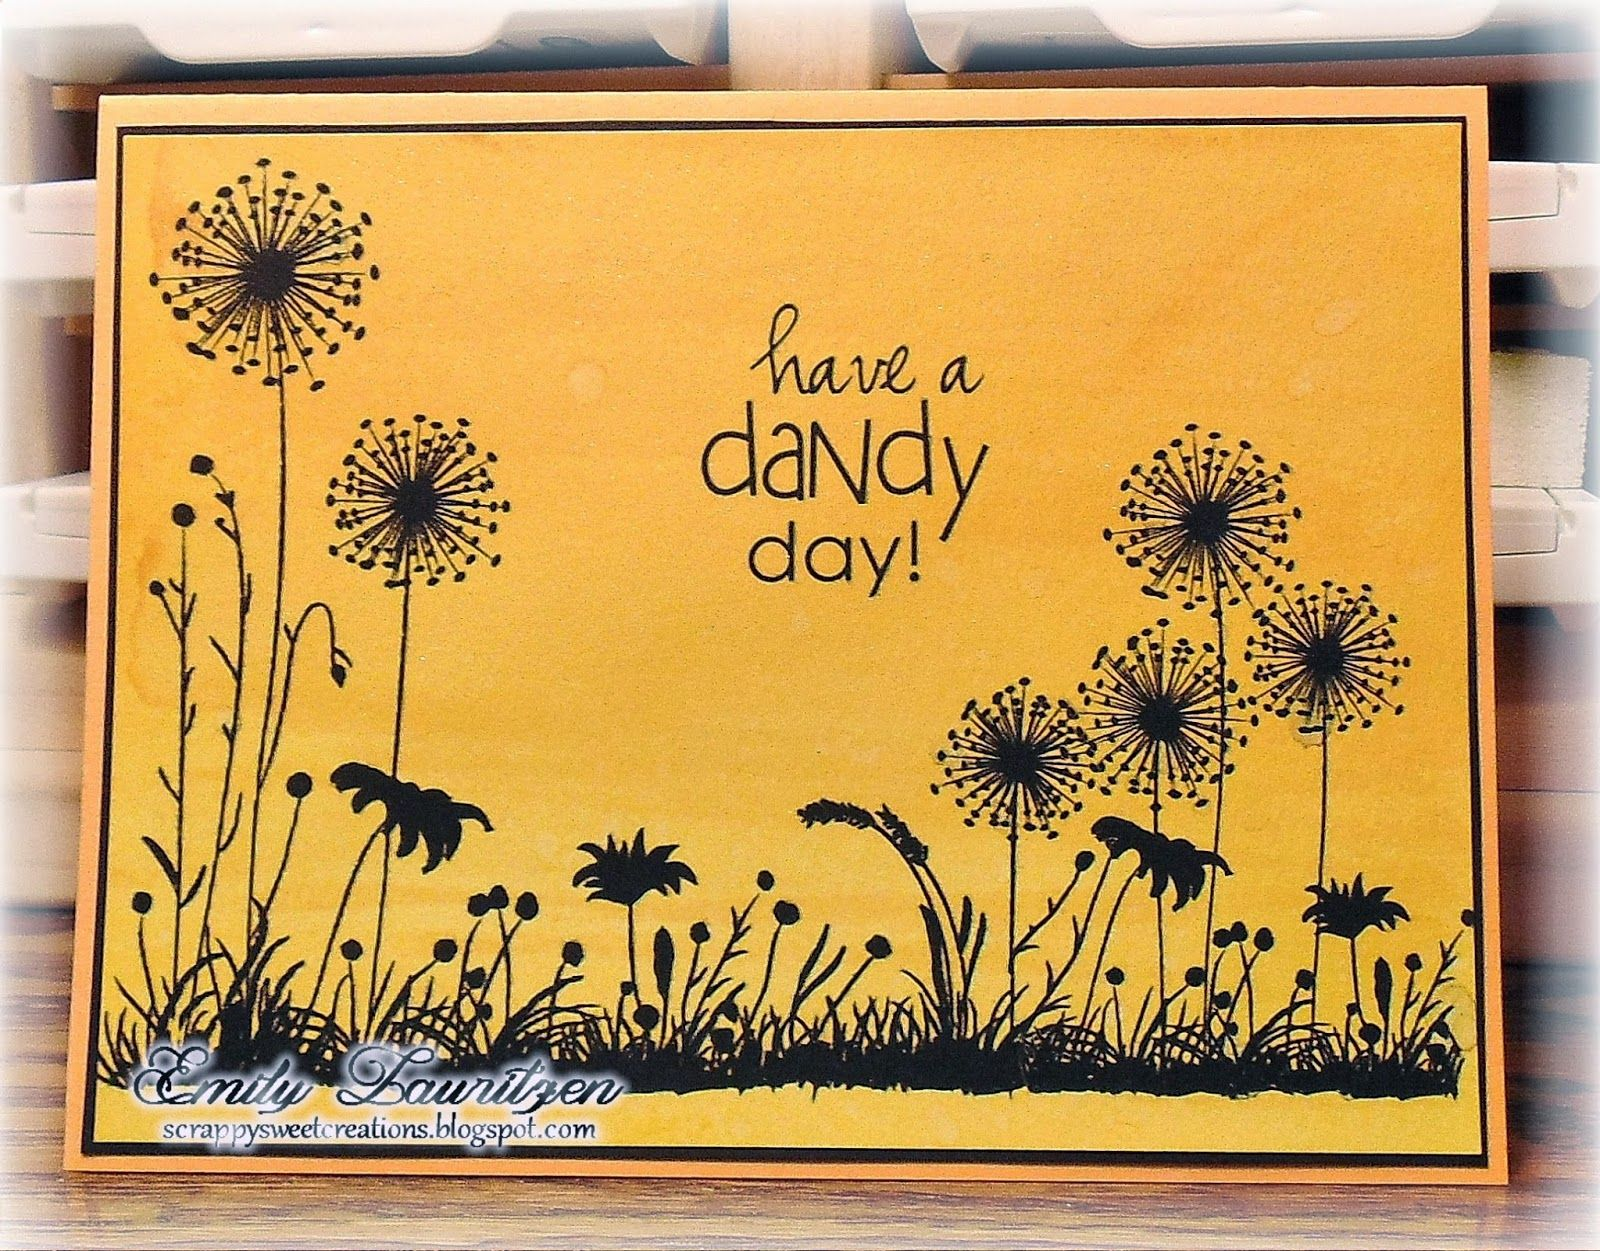 Scrappy Sweet Creations: Dandy Wishes - Paper Makeup Stamps